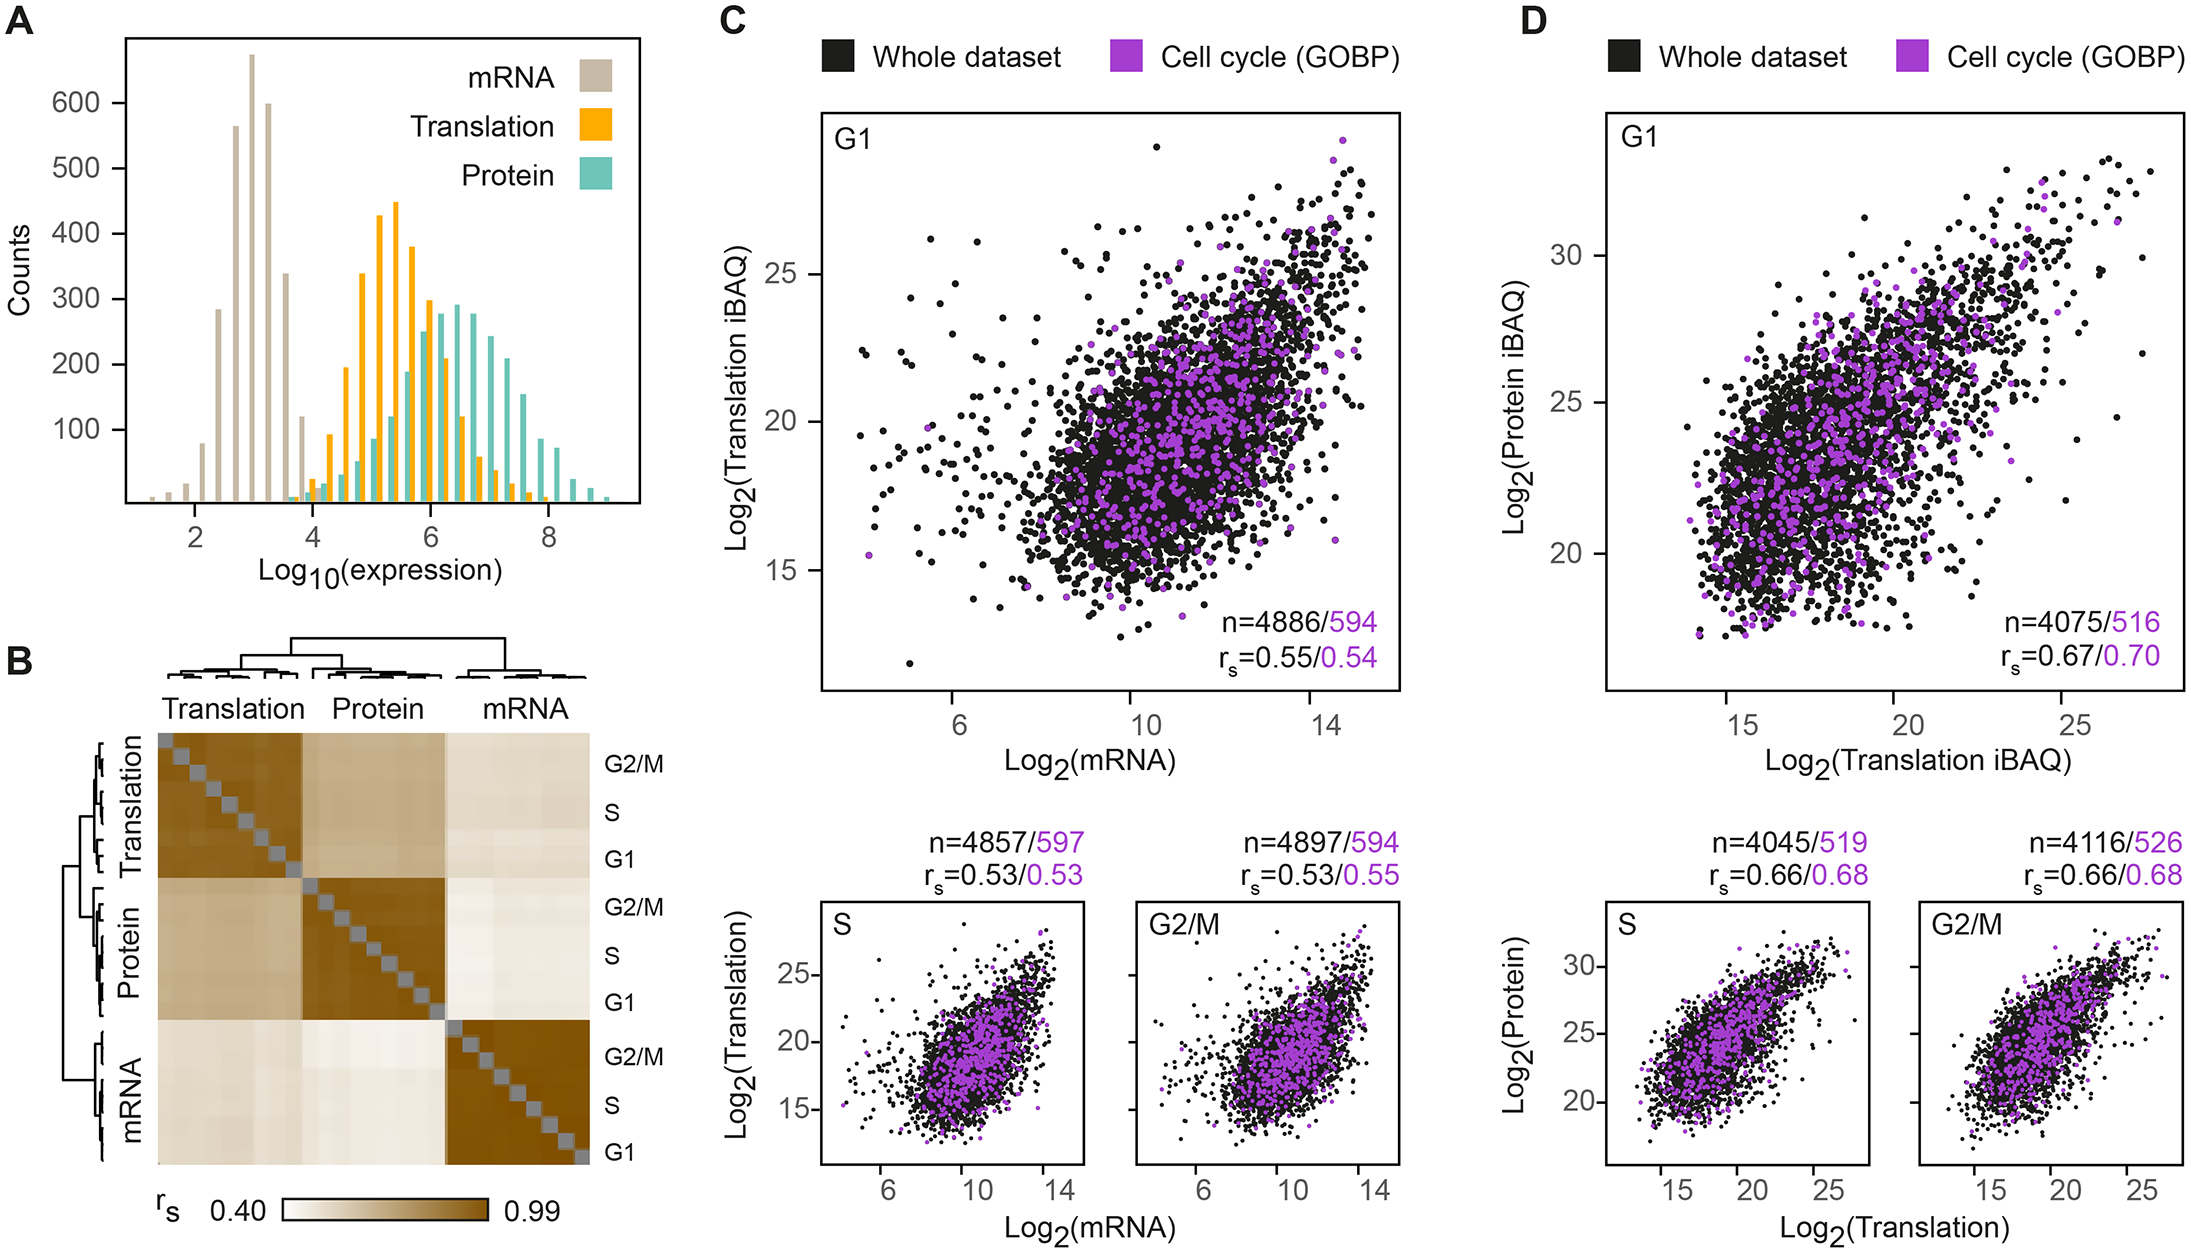 Widespread post-transcriptional control across the cell cycle.